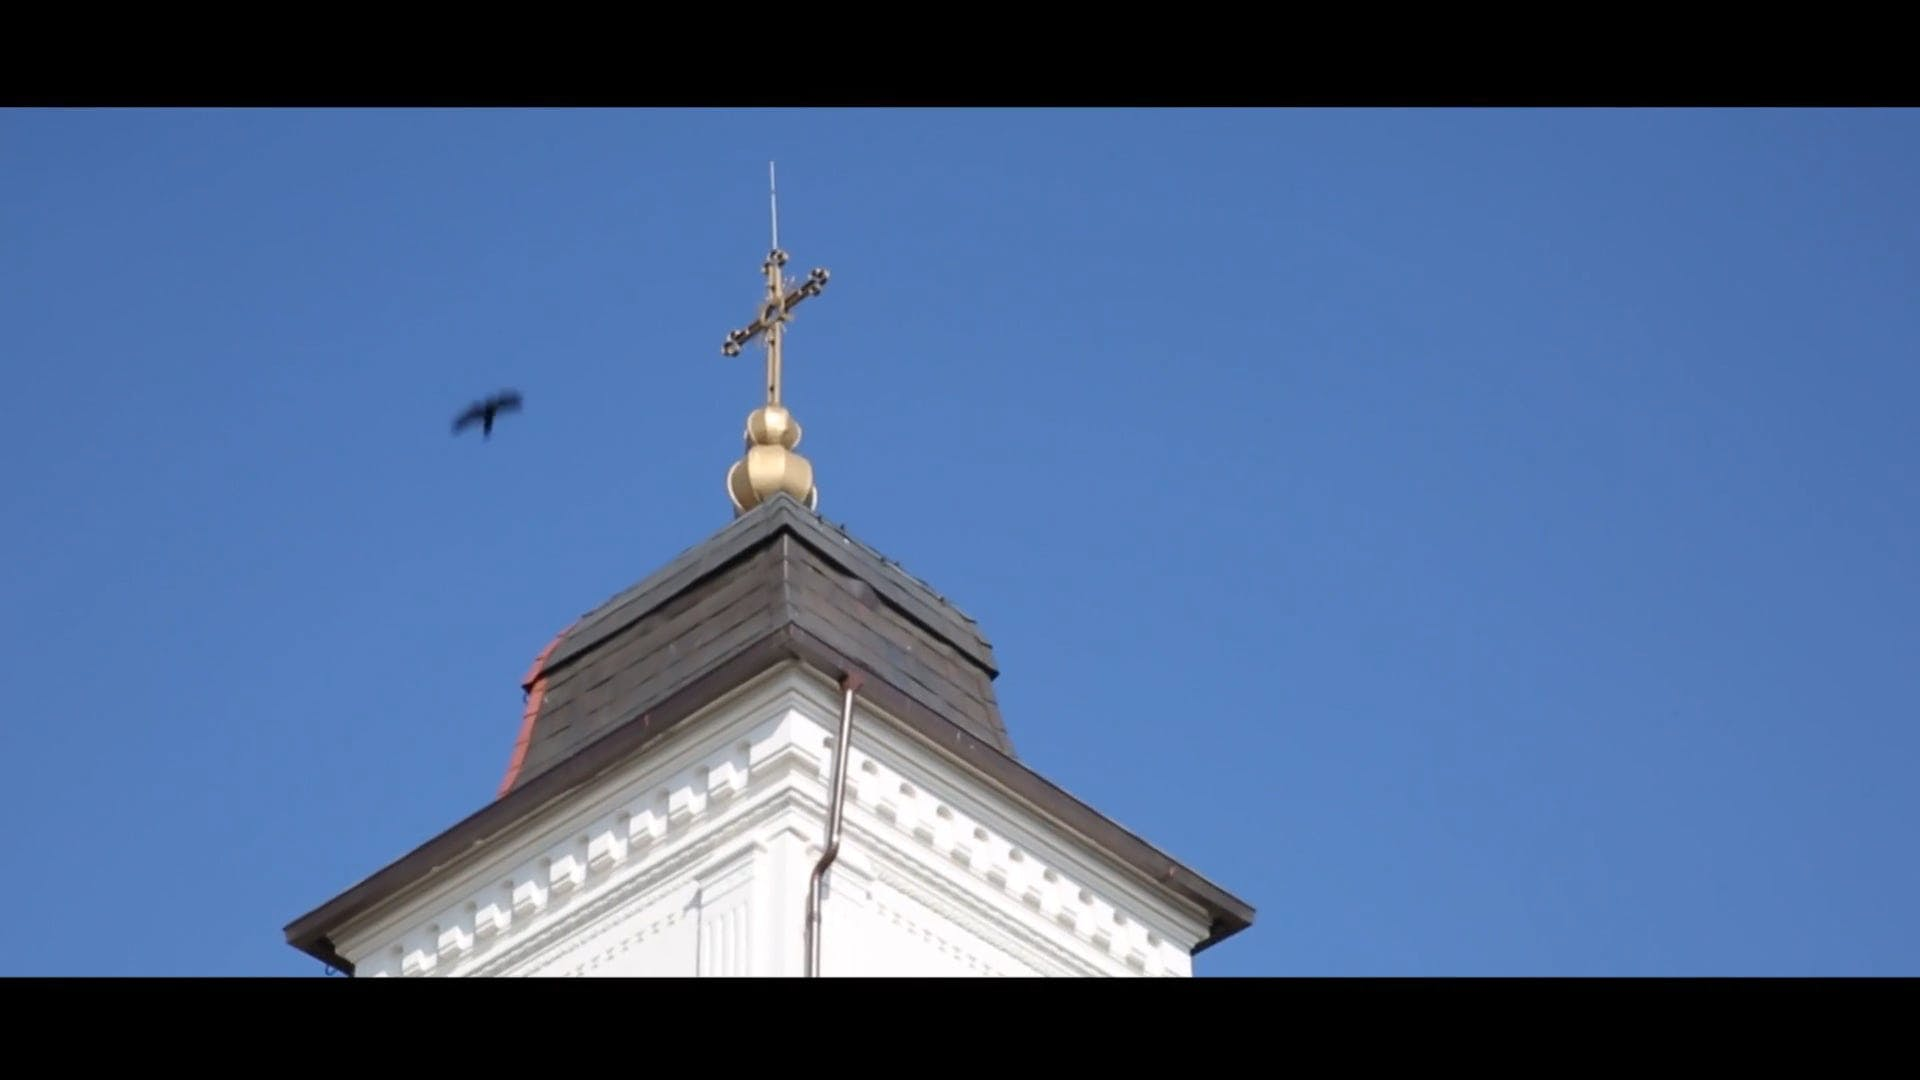 Video Footage Of A Church